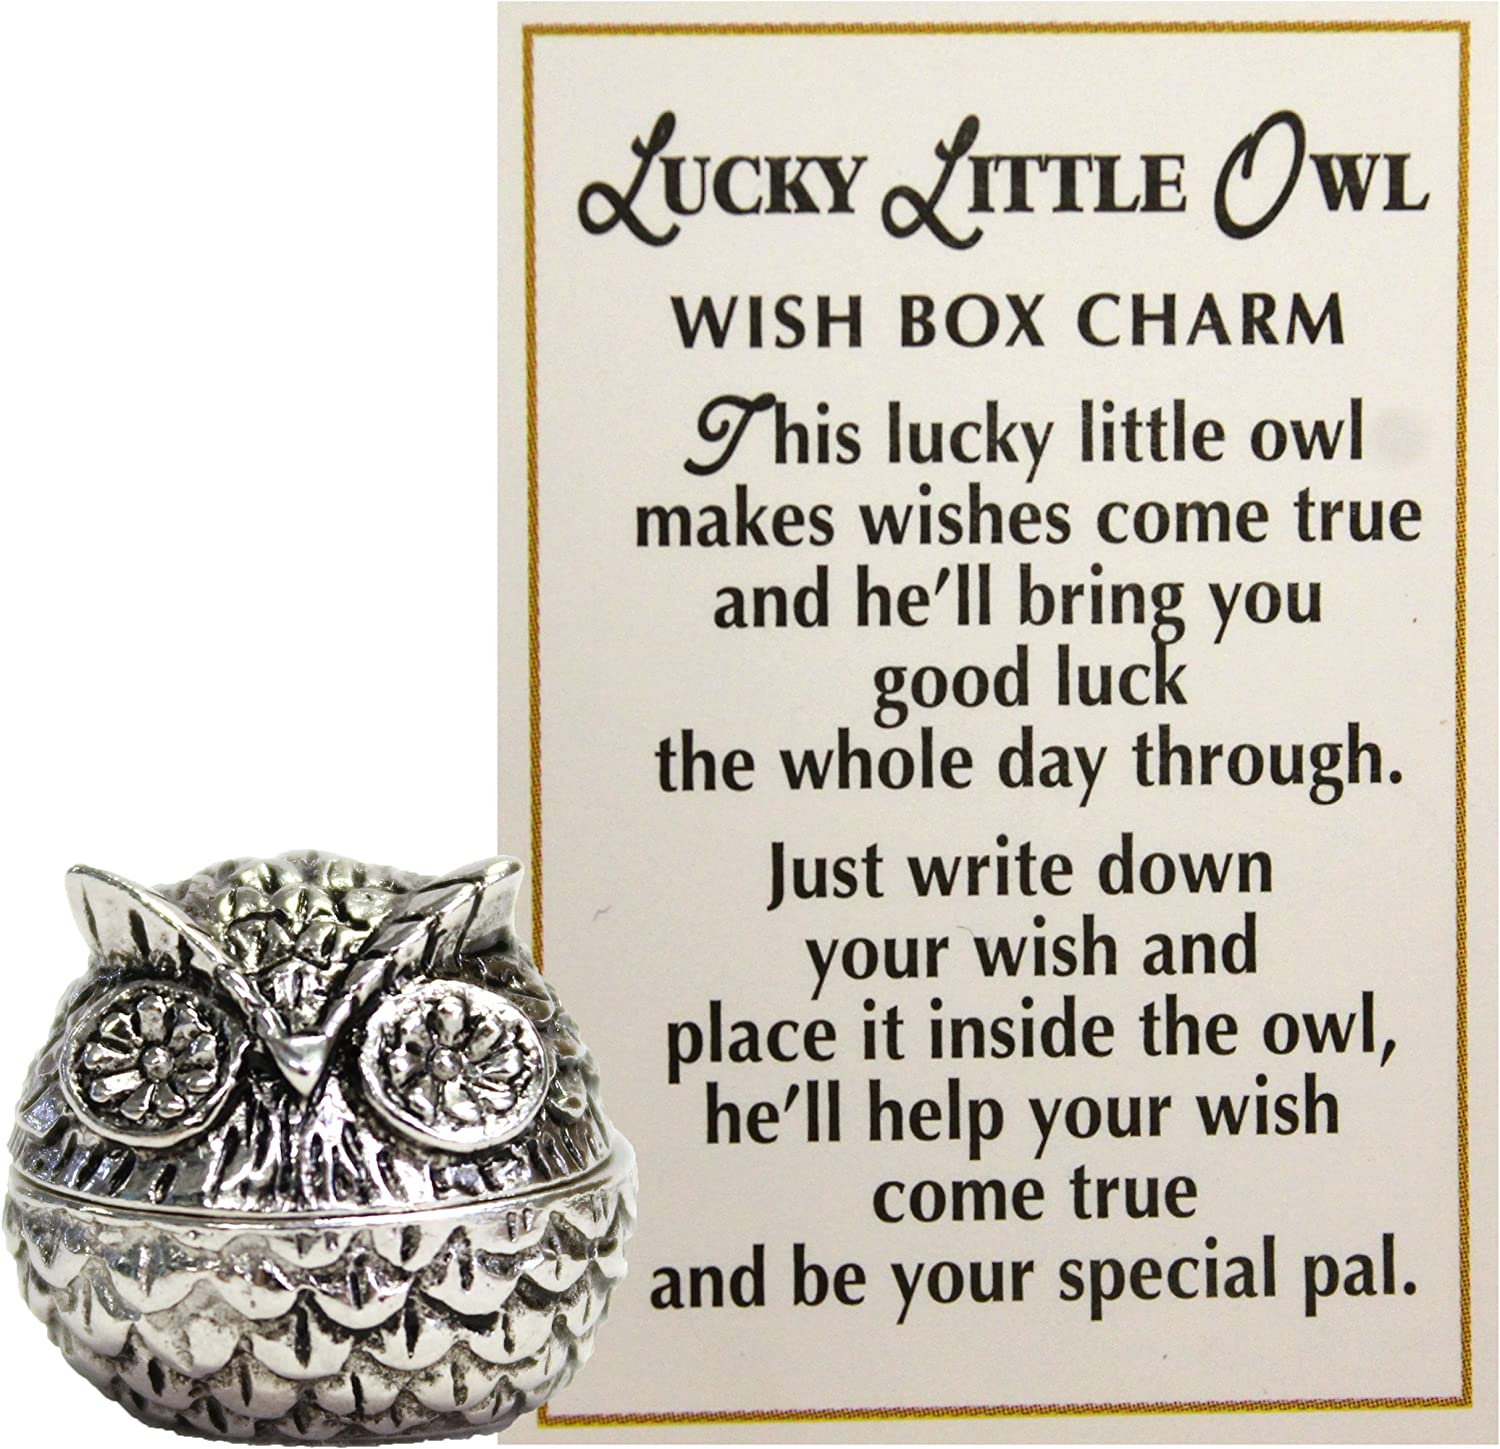 Ganz Lucky Little Owl Wish Box Charm with Story Card!